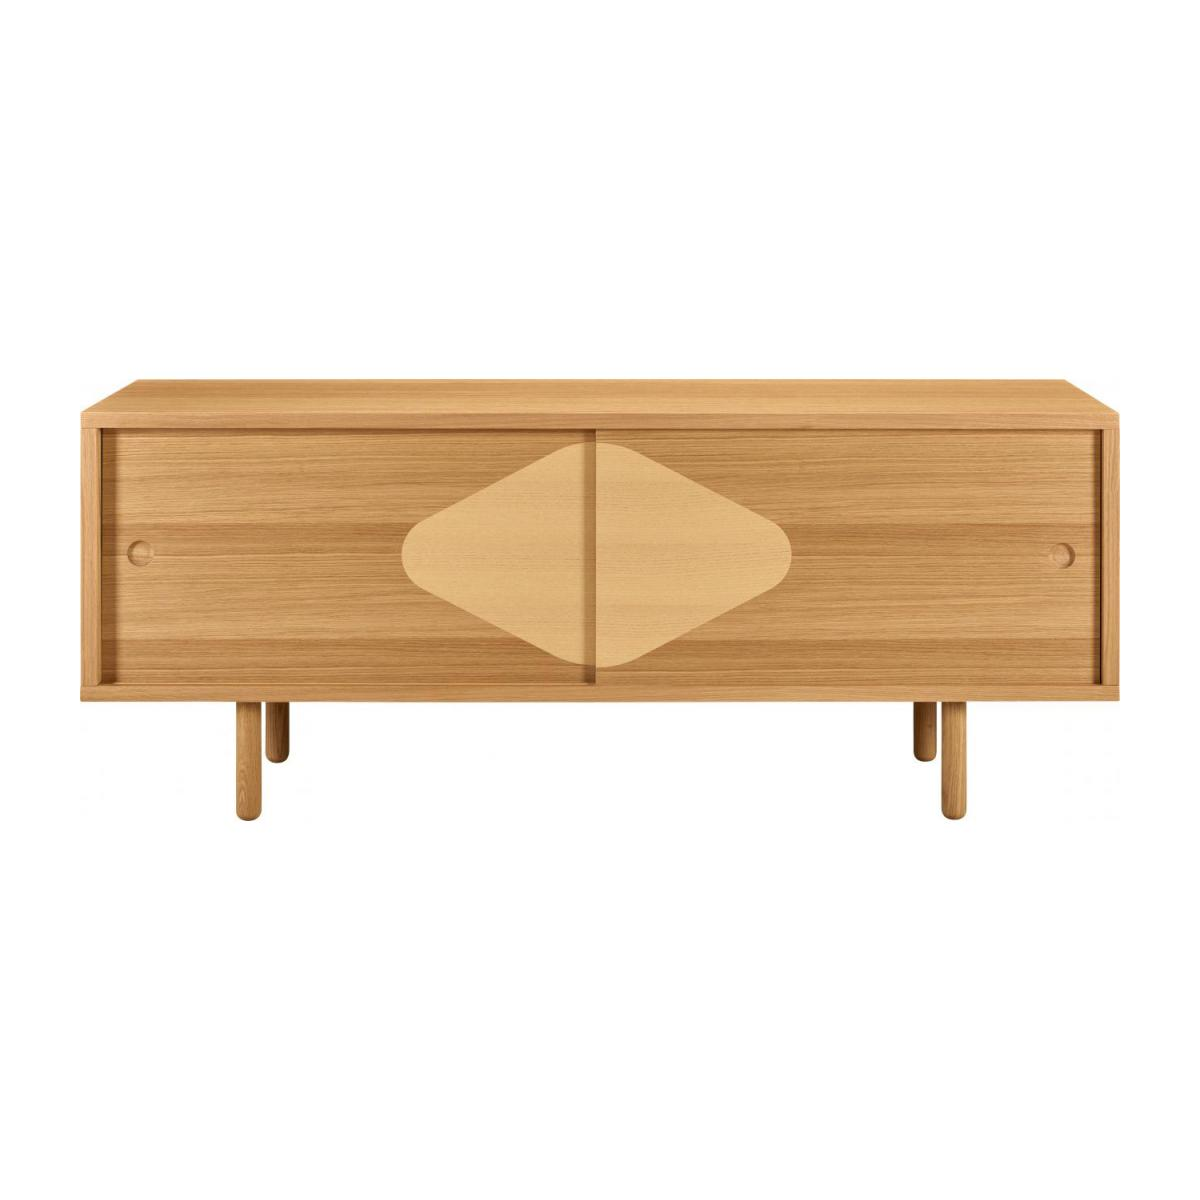 Buffet - Chêne - Design by Guillaume Delvigne n°5